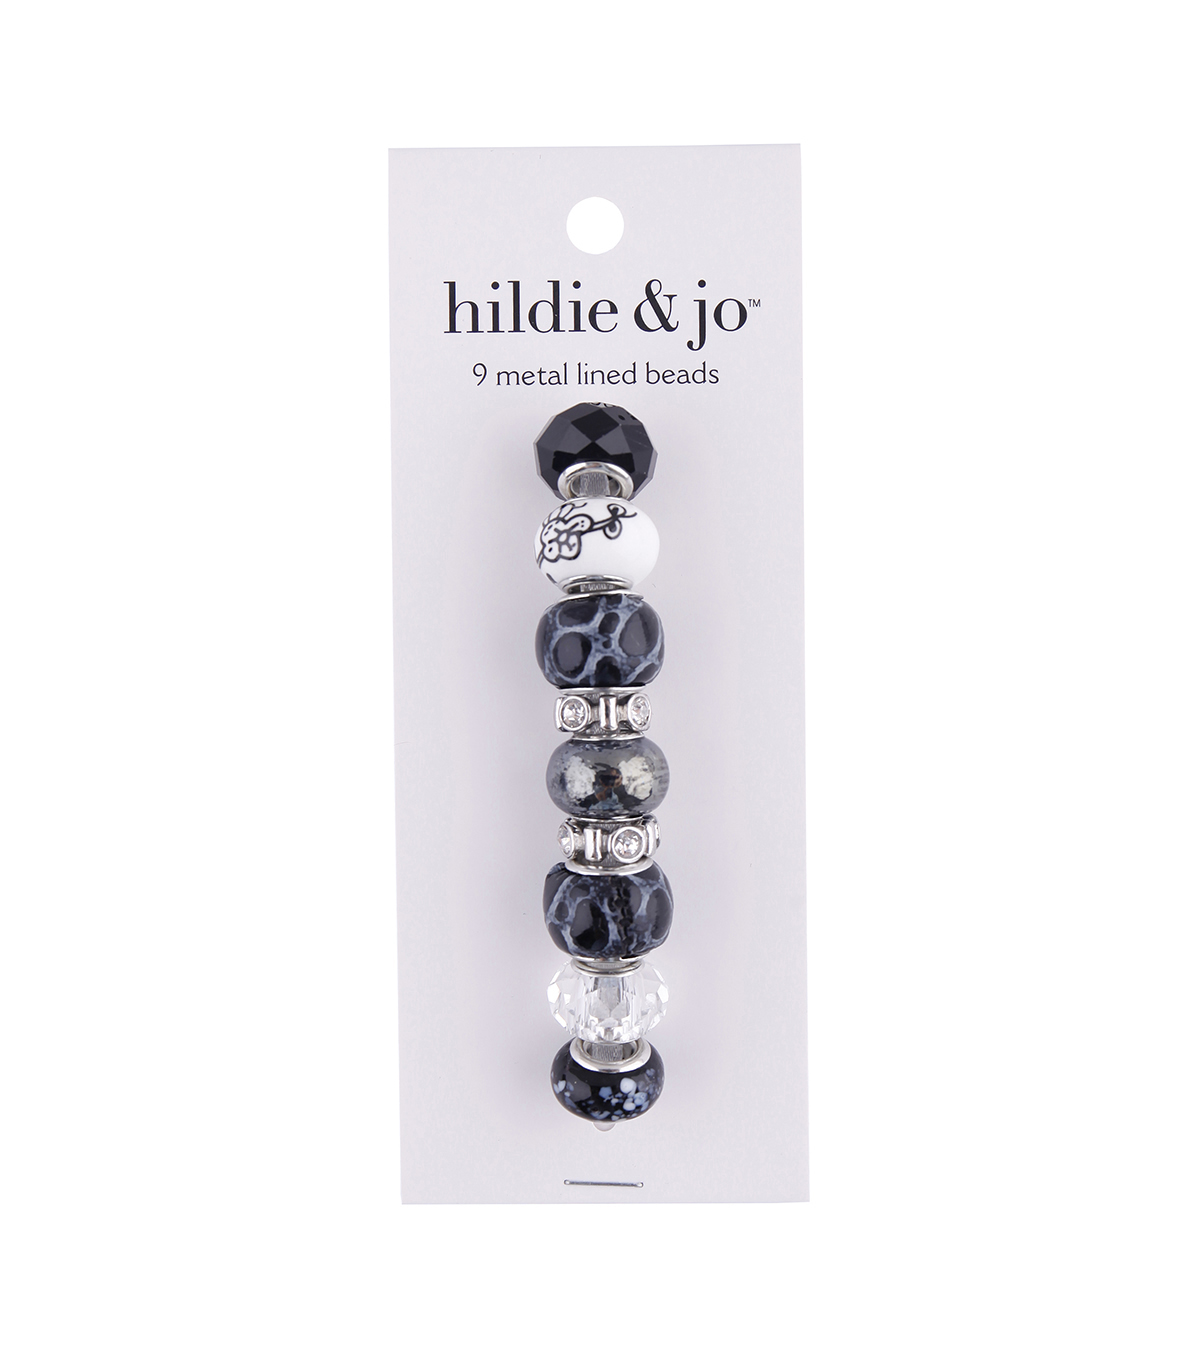 hildie & jo™ Metal Lined Glass Beads-Black, White & Clear